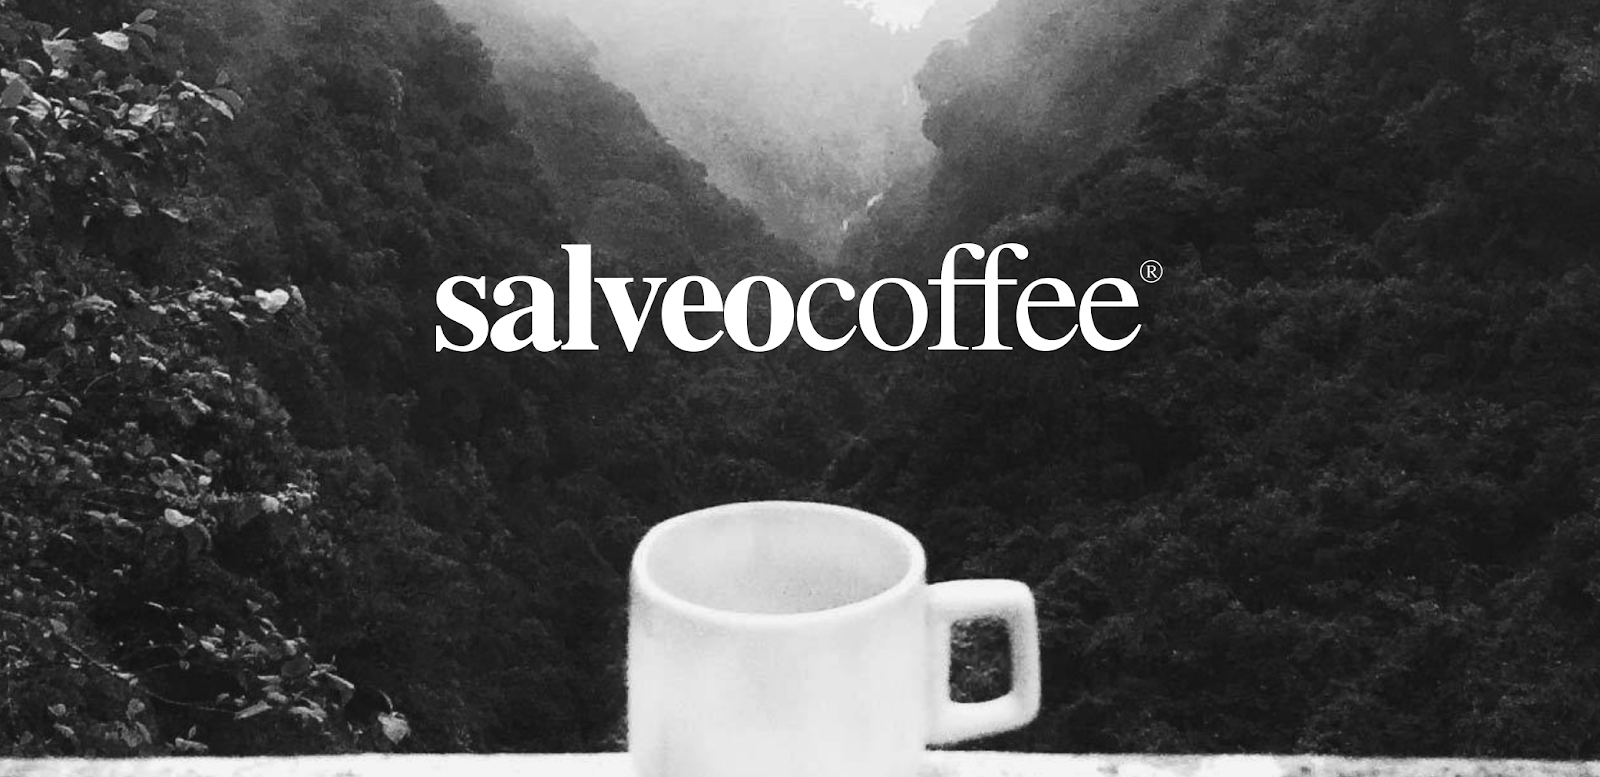 coffee brands looking for influencers